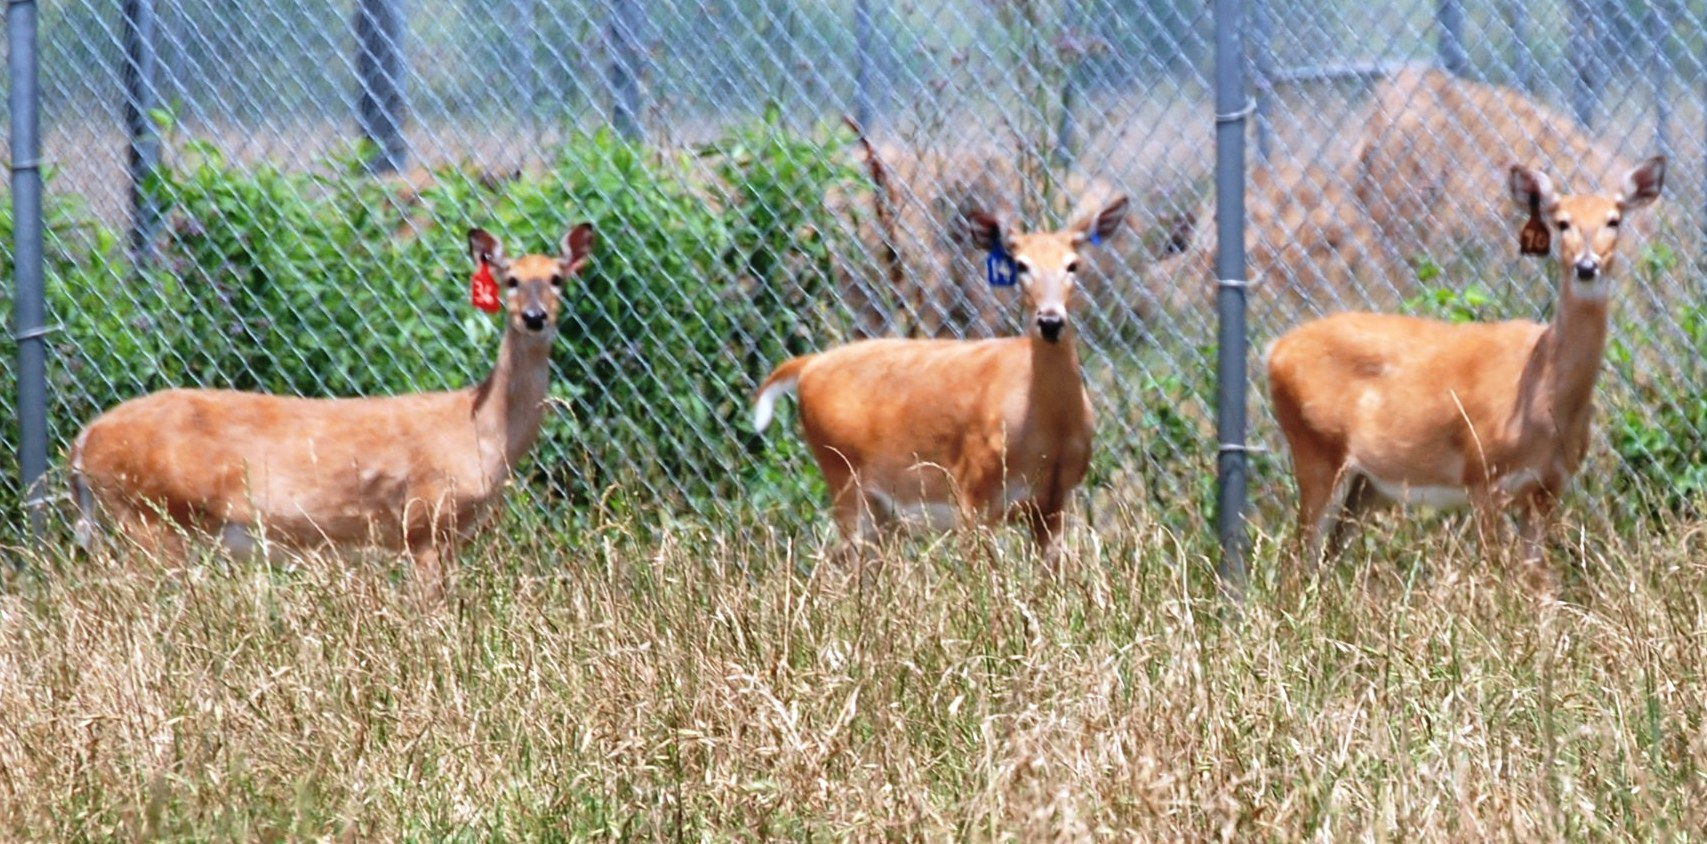 Cutting-edge research could improve deer populations, health